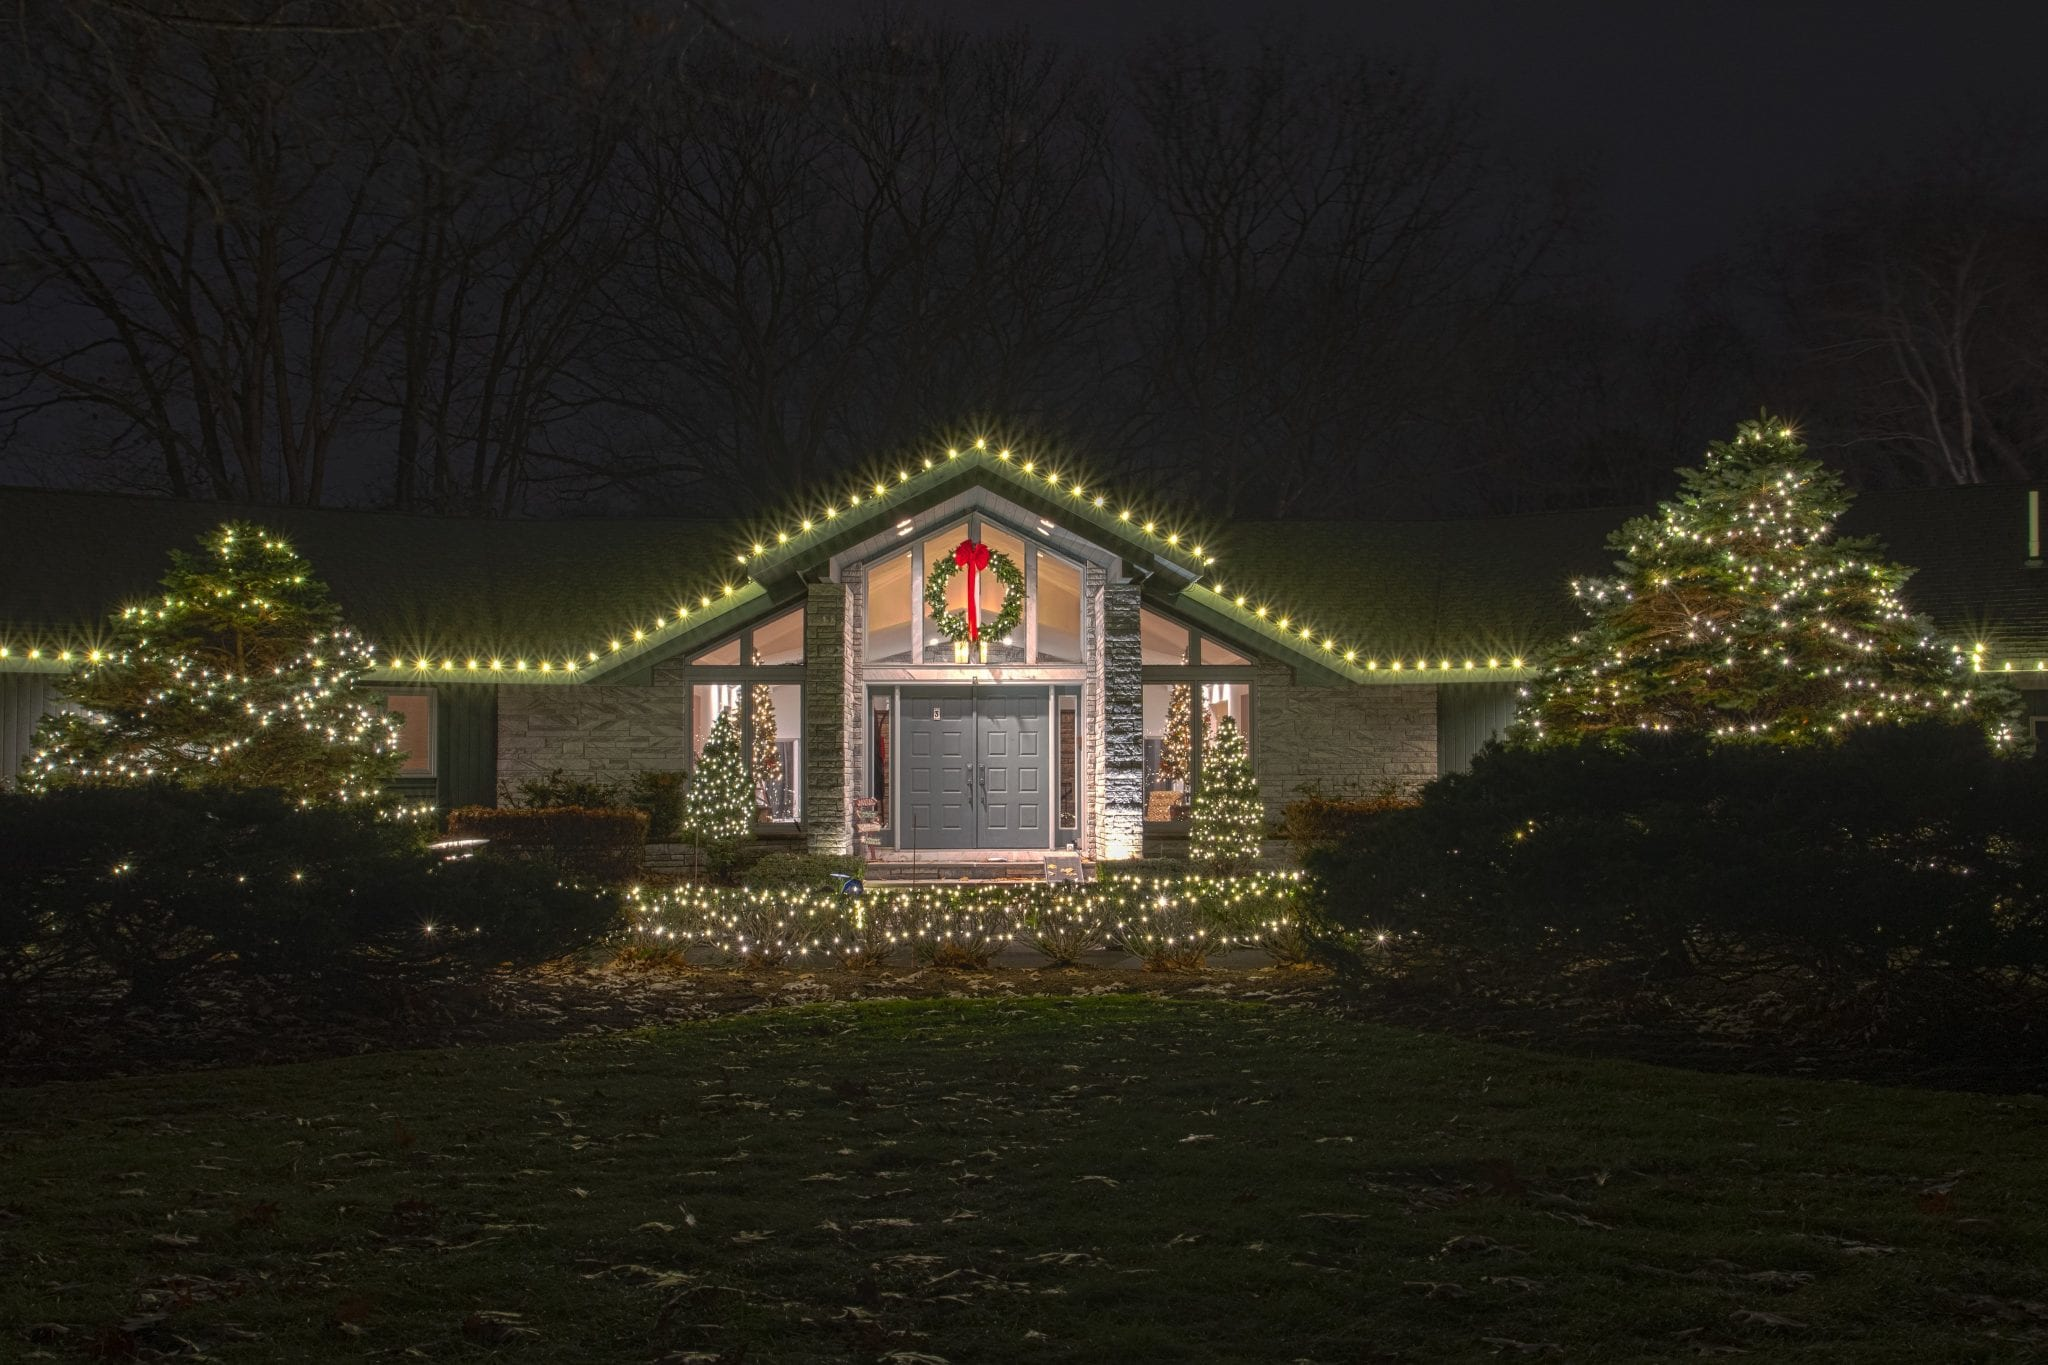 Single story home in Menands NY decorated for Christmas with white lights on the roof and trees with a live wreath hanging.